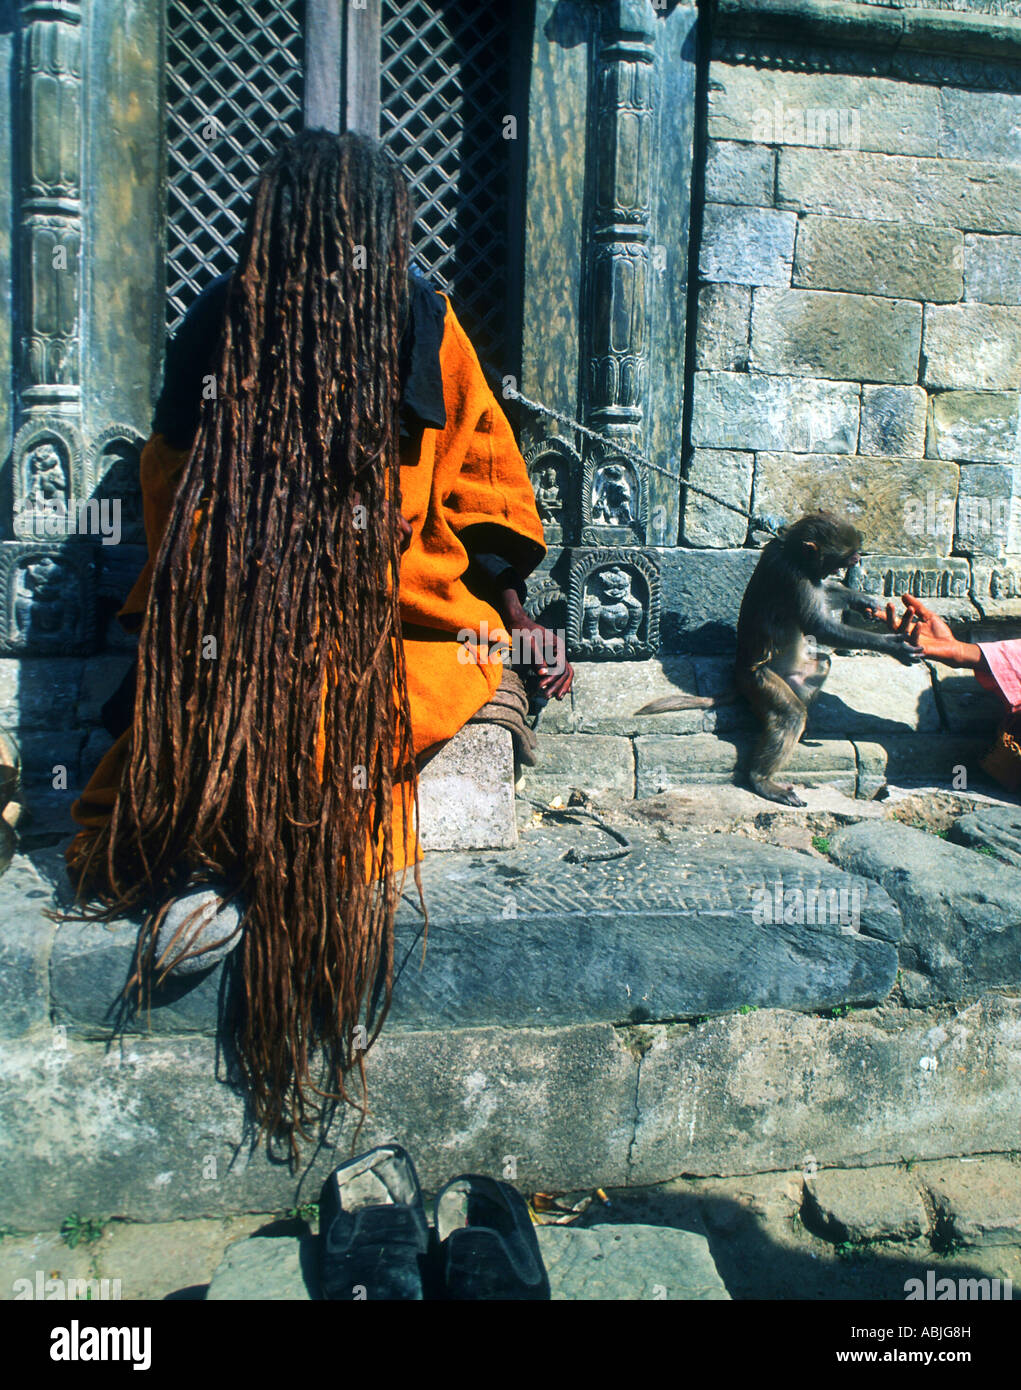 One of the many Shamens outside a Hindhu temple in central Kathmandhu Nepal - Stock Image